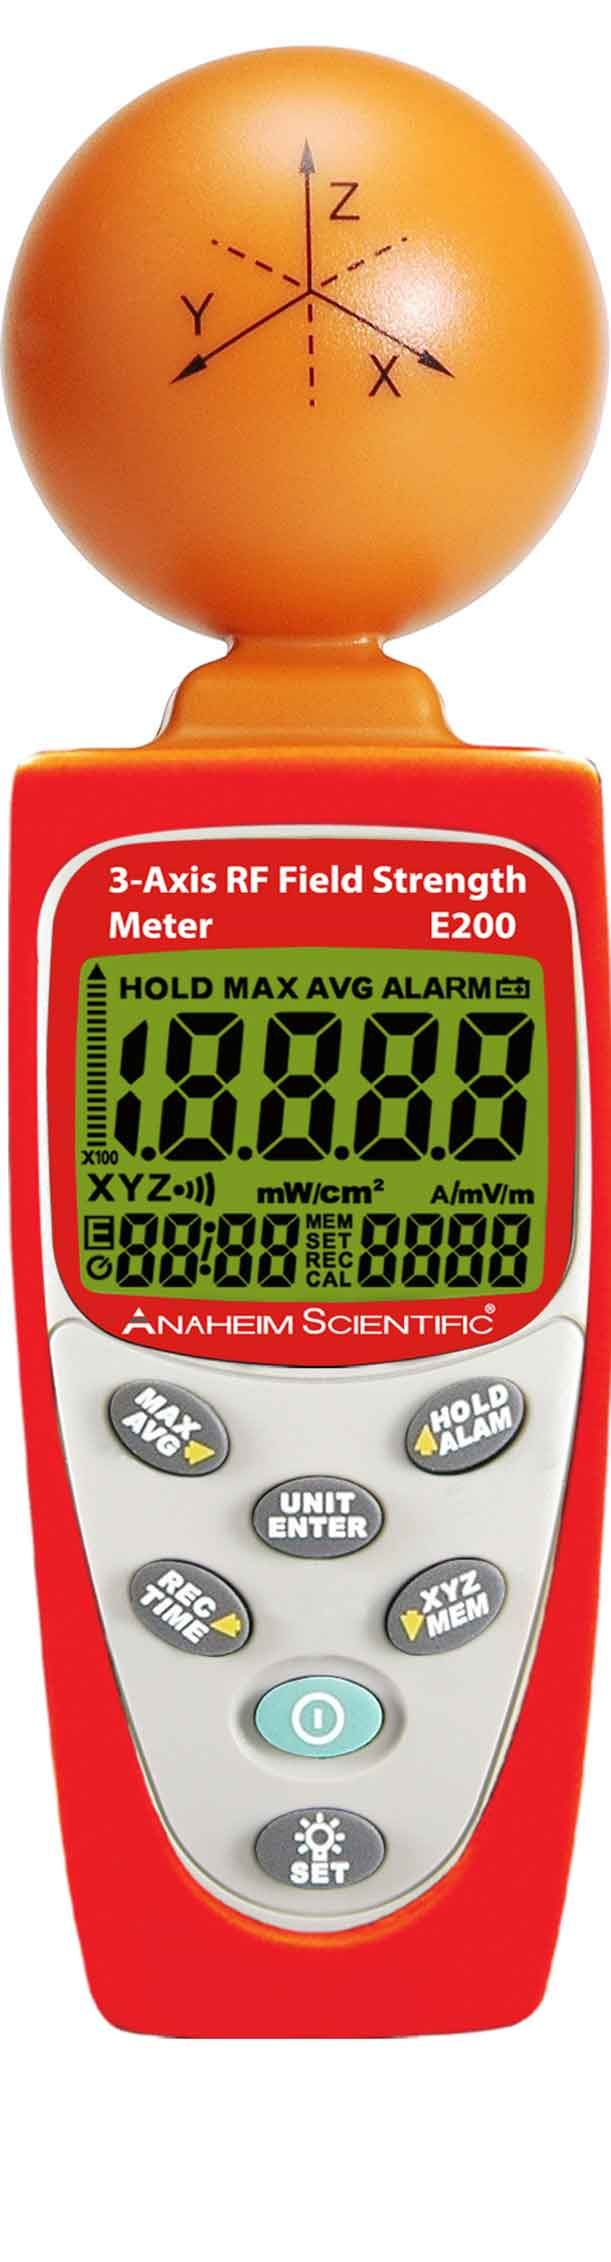 E200 3-Axis RF Field Strength Meter